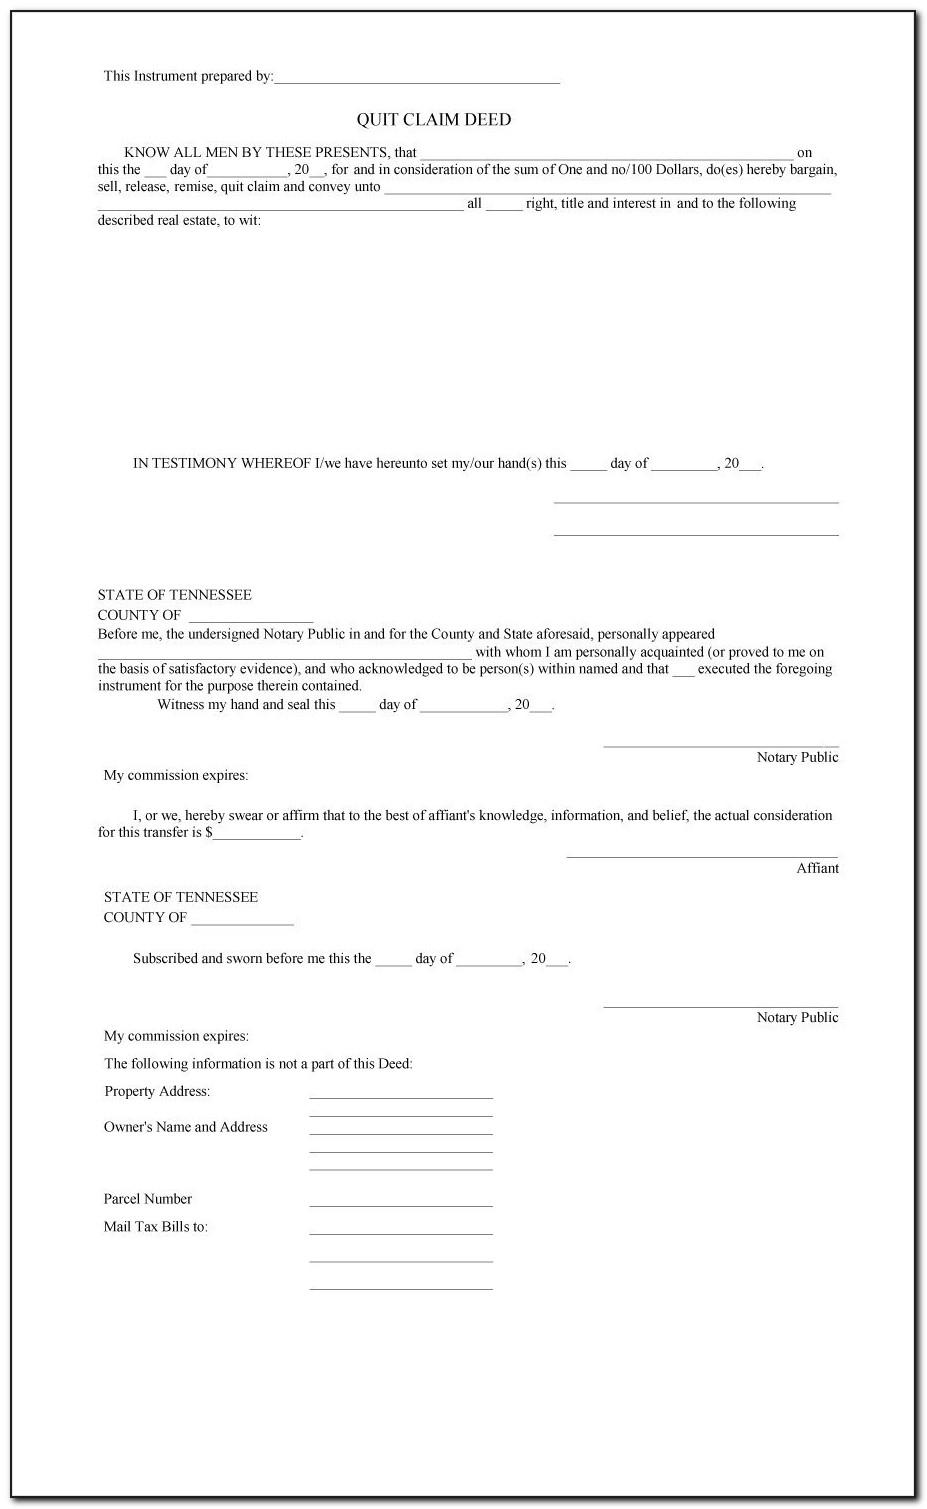 Quit Claim Deed Sample Letter